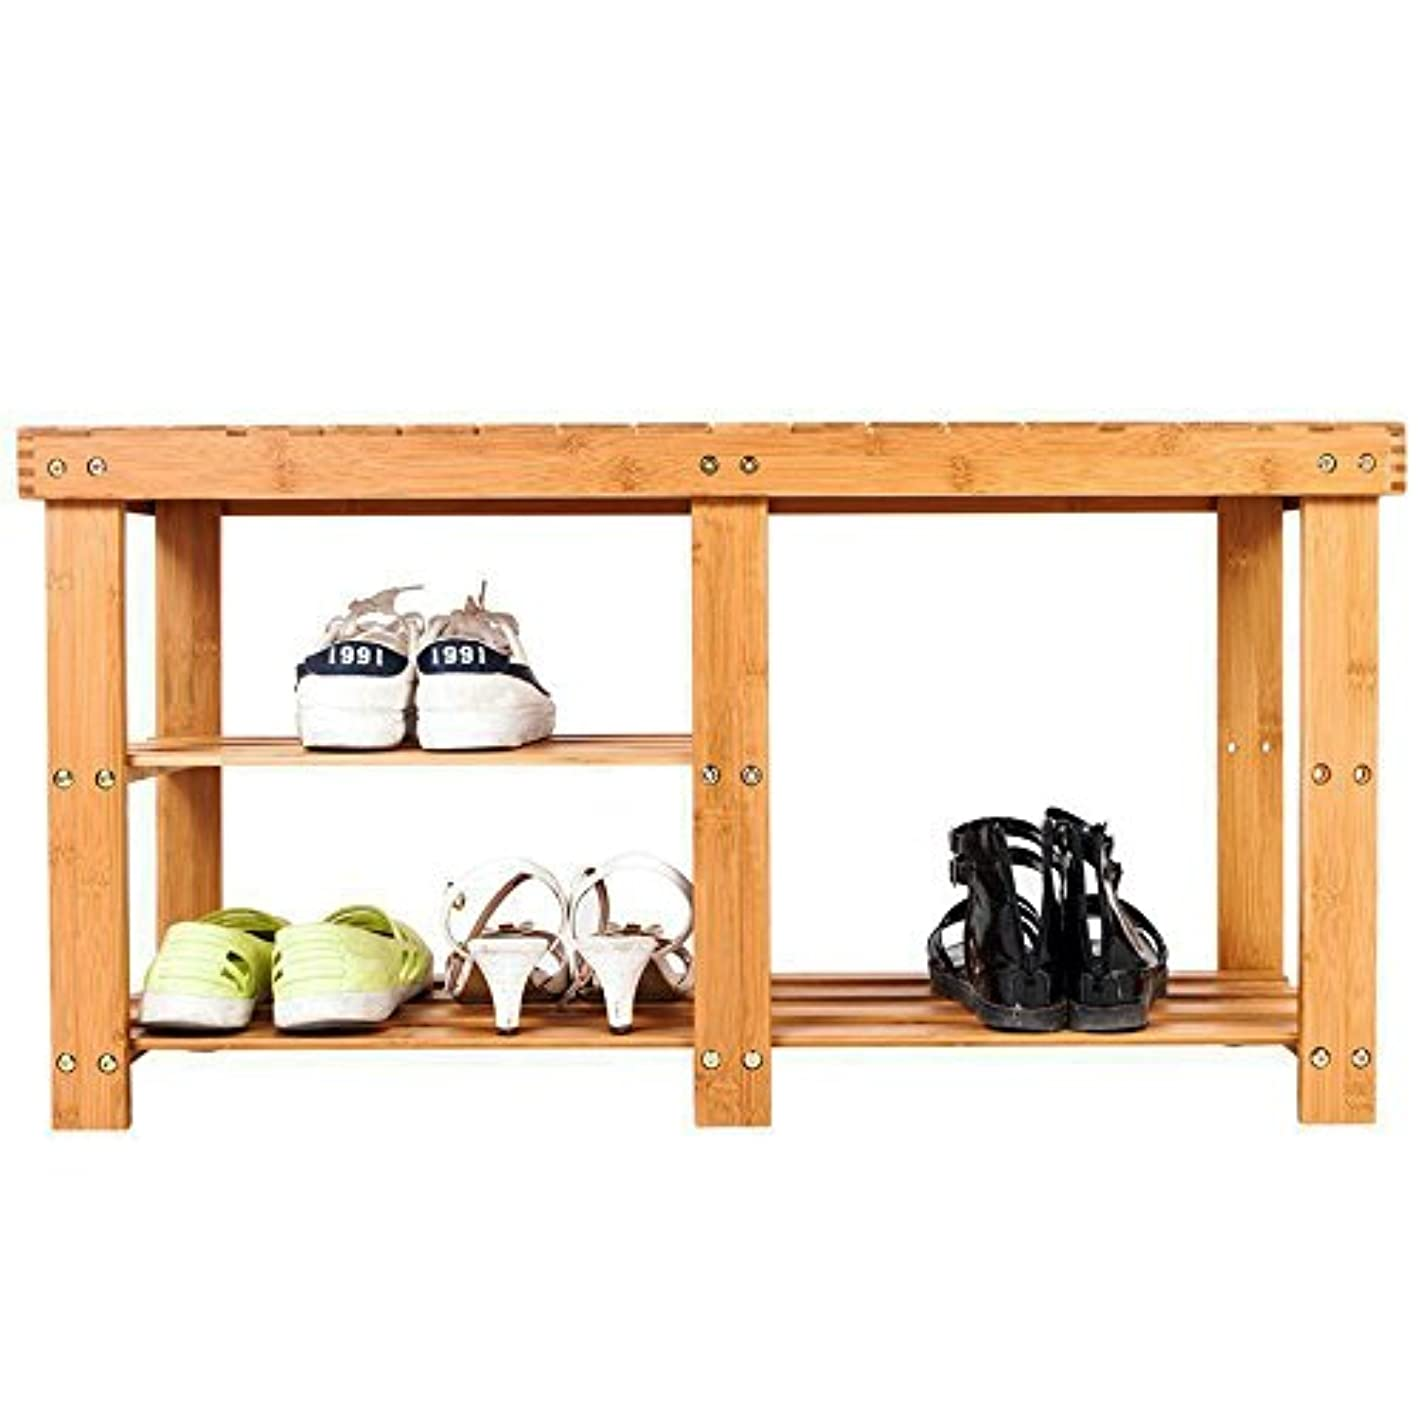 Bonnlo 3-Tier Bamboo Shoe Bench, Shoe Organizer, Storage Shelf Holds Up to 330 Lbs, Ideal for Entryway Hallway Bathroom Living Room and Corridor